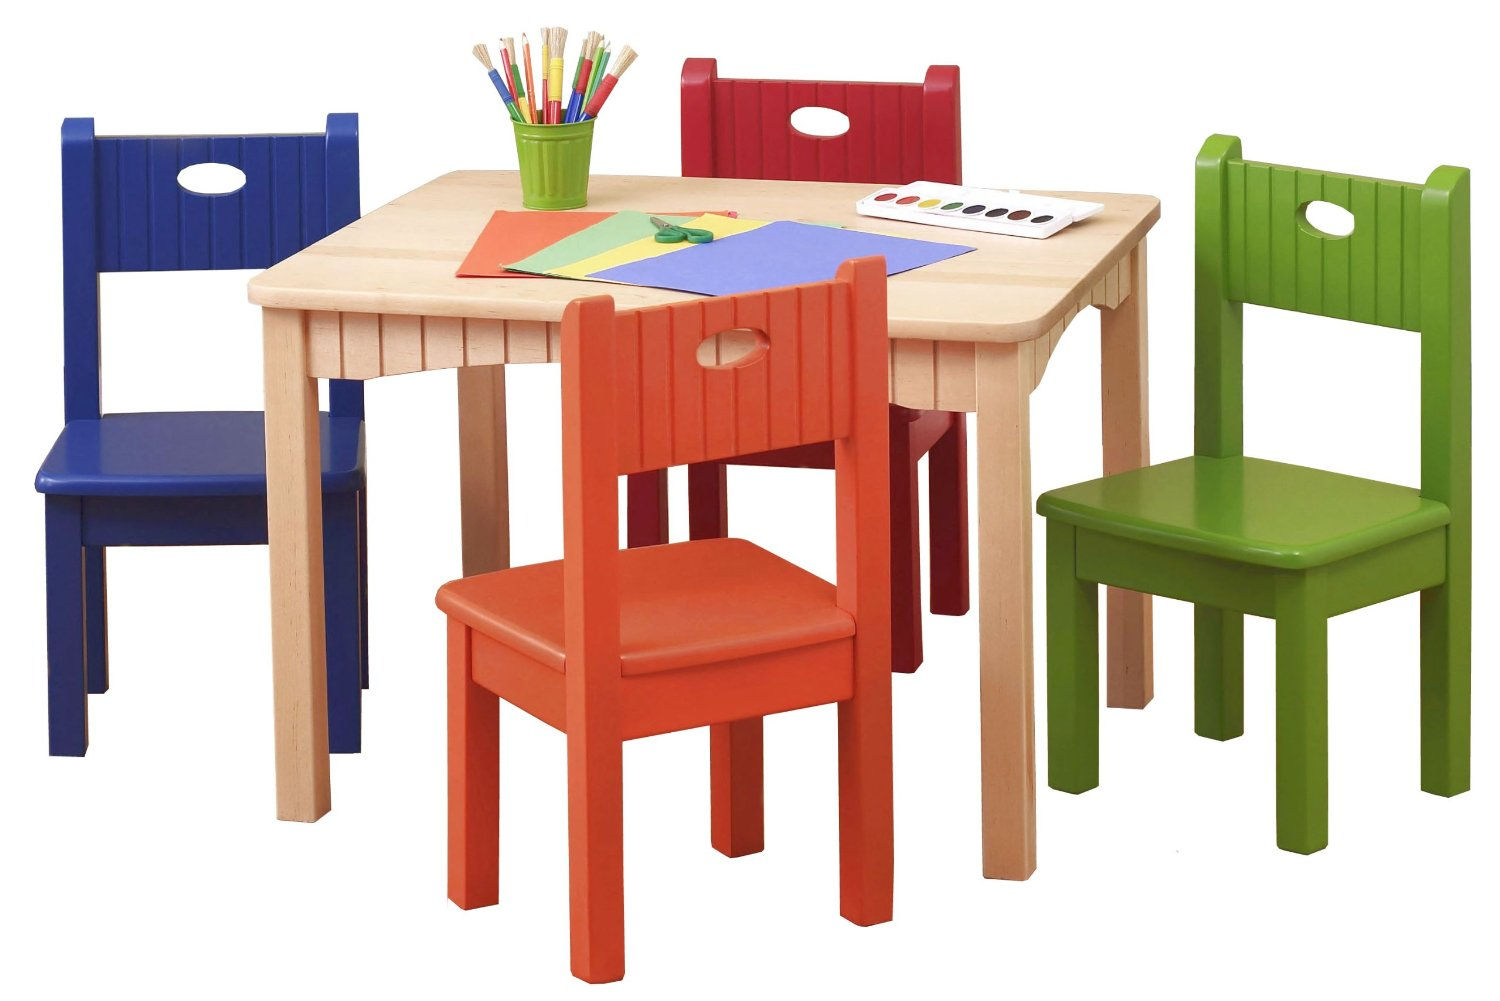 Kids table and chairs tips to purchase kids table and chairs TNXHLGZ